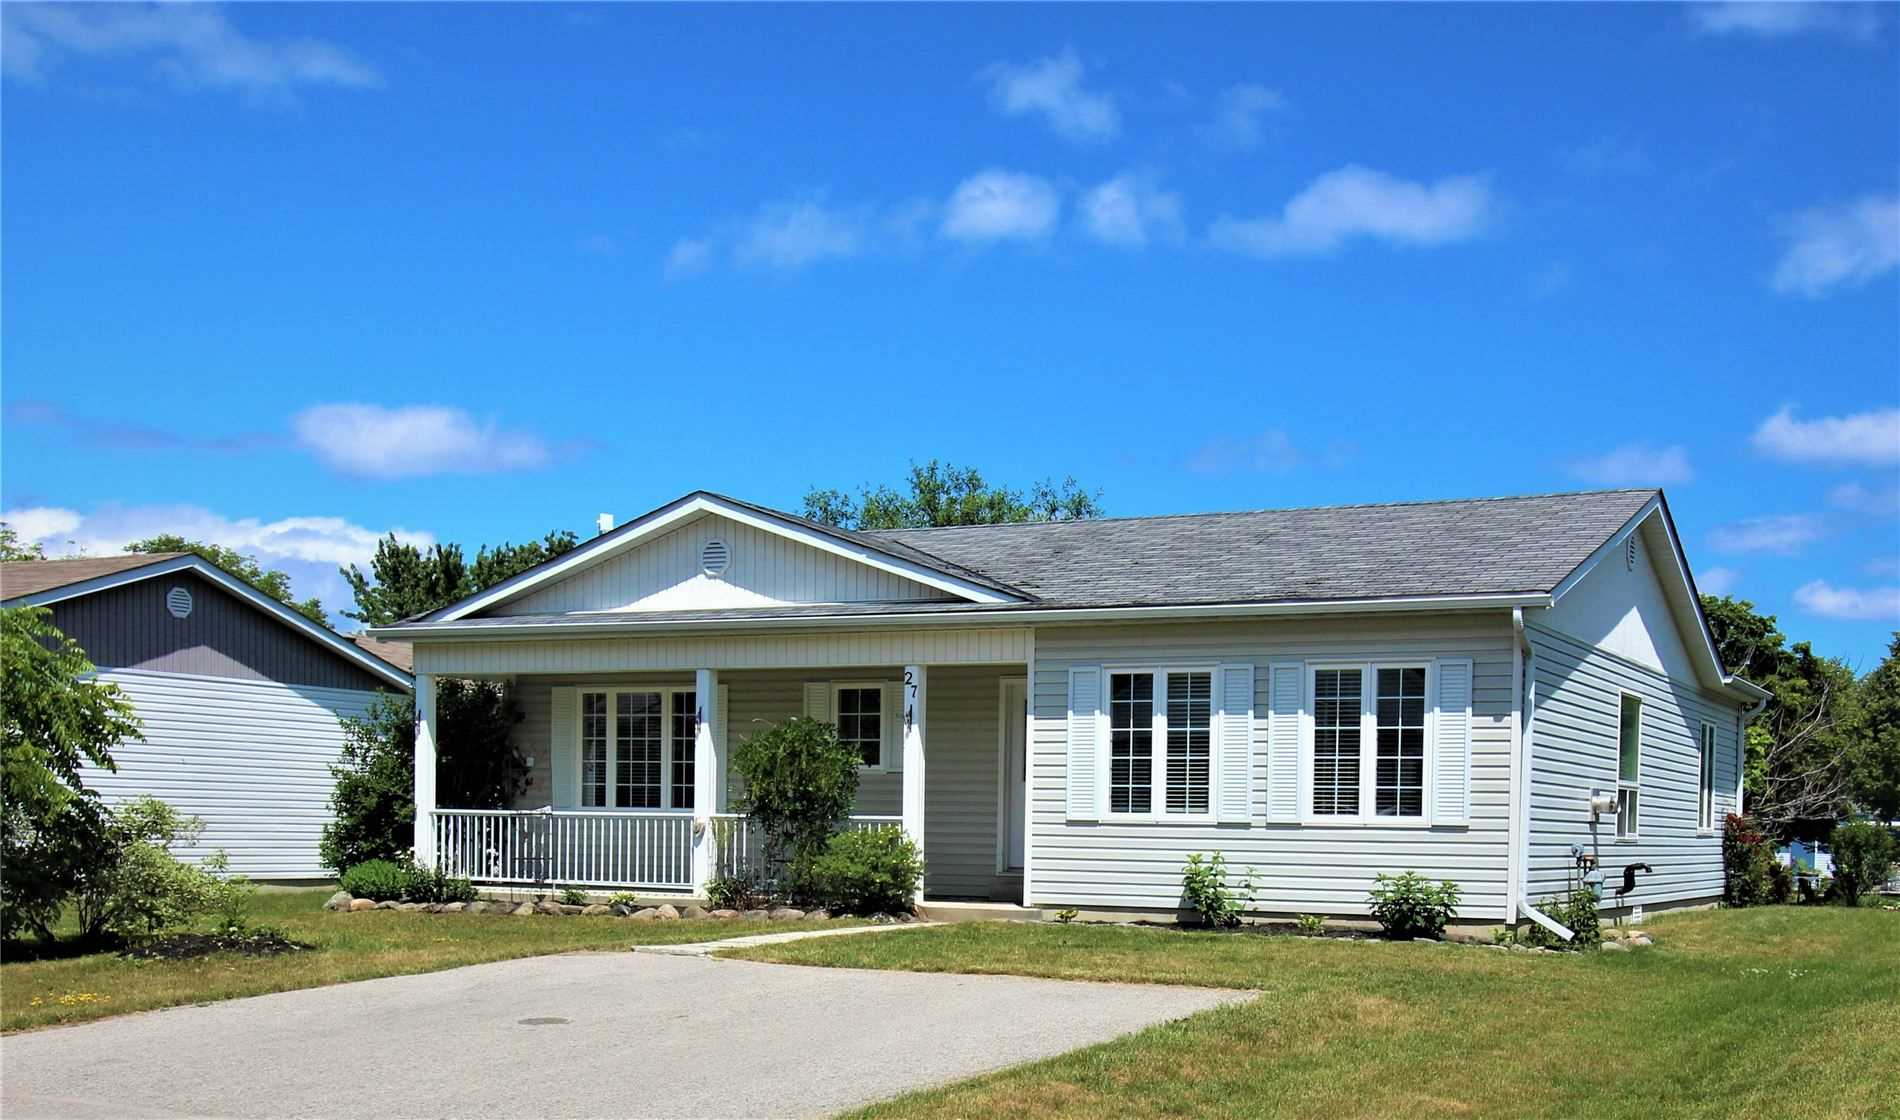 Detached house For Sale In Innisfil - 27 Trellis Lane, Innisfil, Ontario, Canada L9S0A2 , 2 Bedrooms Bedrooms, ,2 BathroomsBathrooms,Detached,For Sale,Trellis